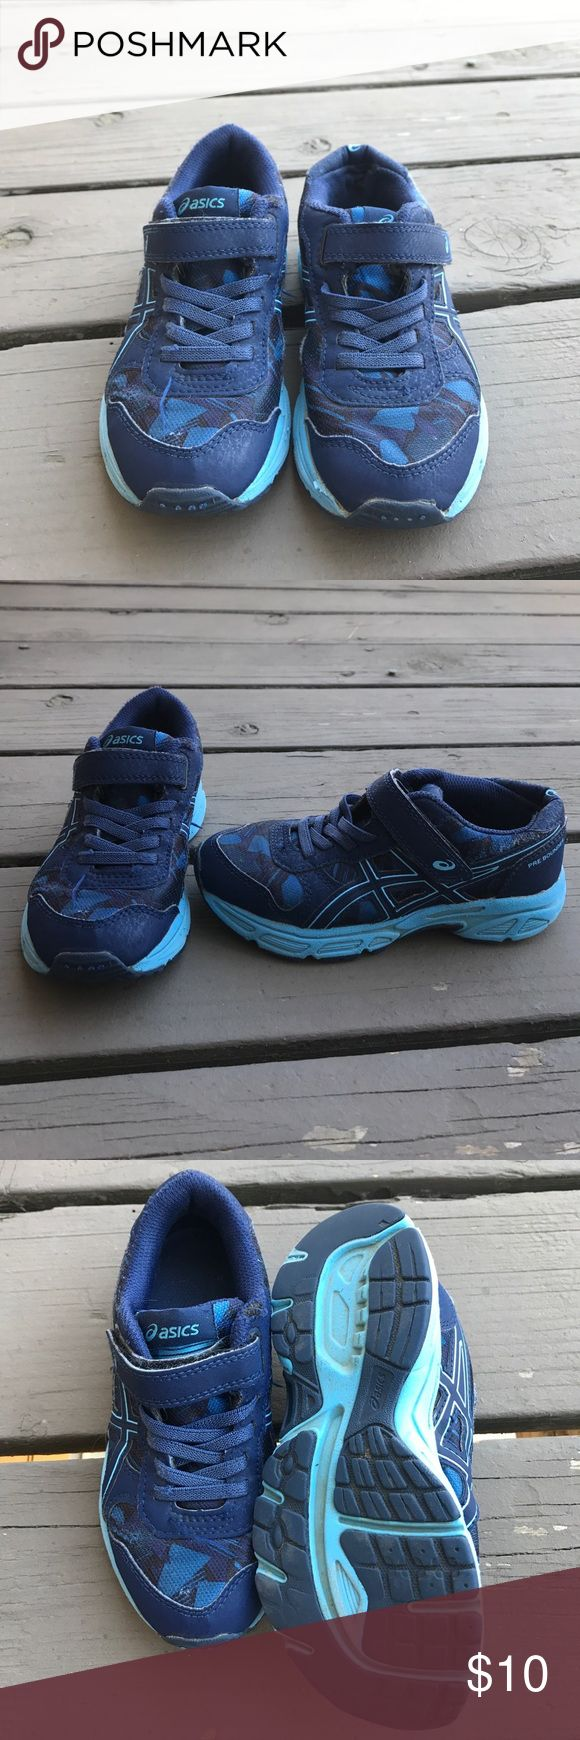 Asics boy running shoes size 12 normal wear Asics size 12 boys running shoes. Used, normal wear. Asics Shoes Sneakers